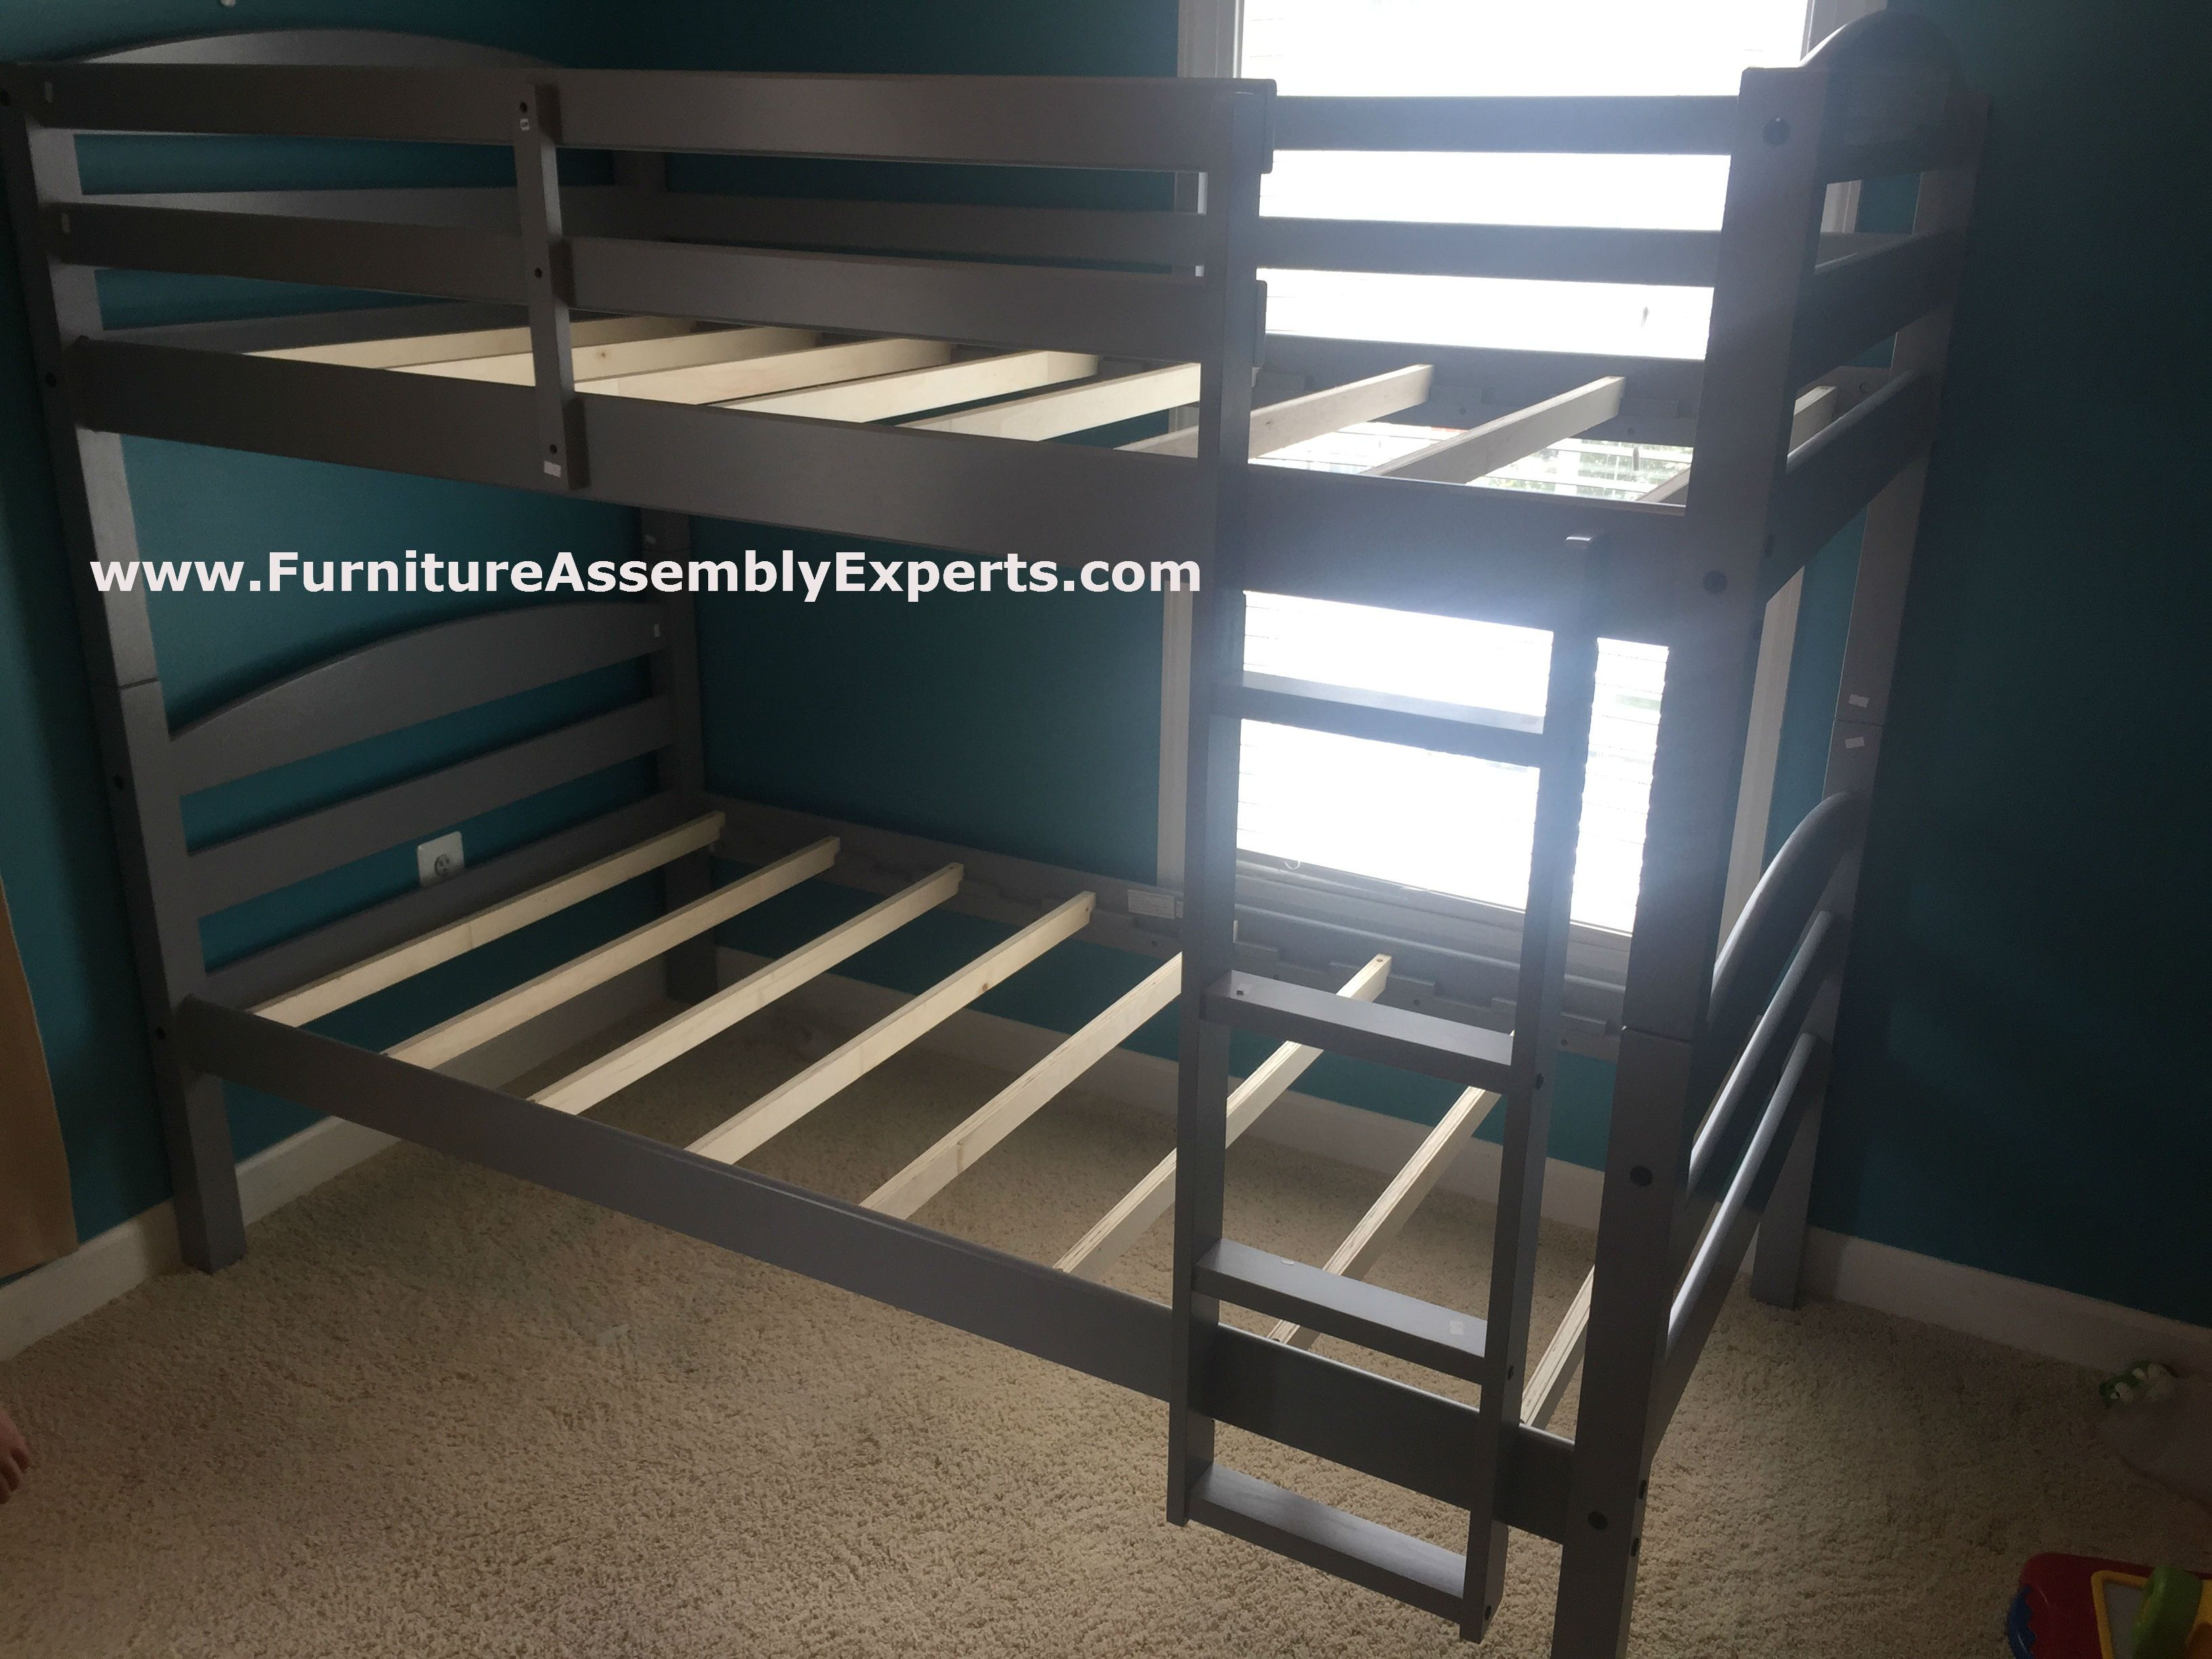 mobilier de bureau baltimore big lots bunk bed assembled in baltimore md by furniture assembly experts llc bel air